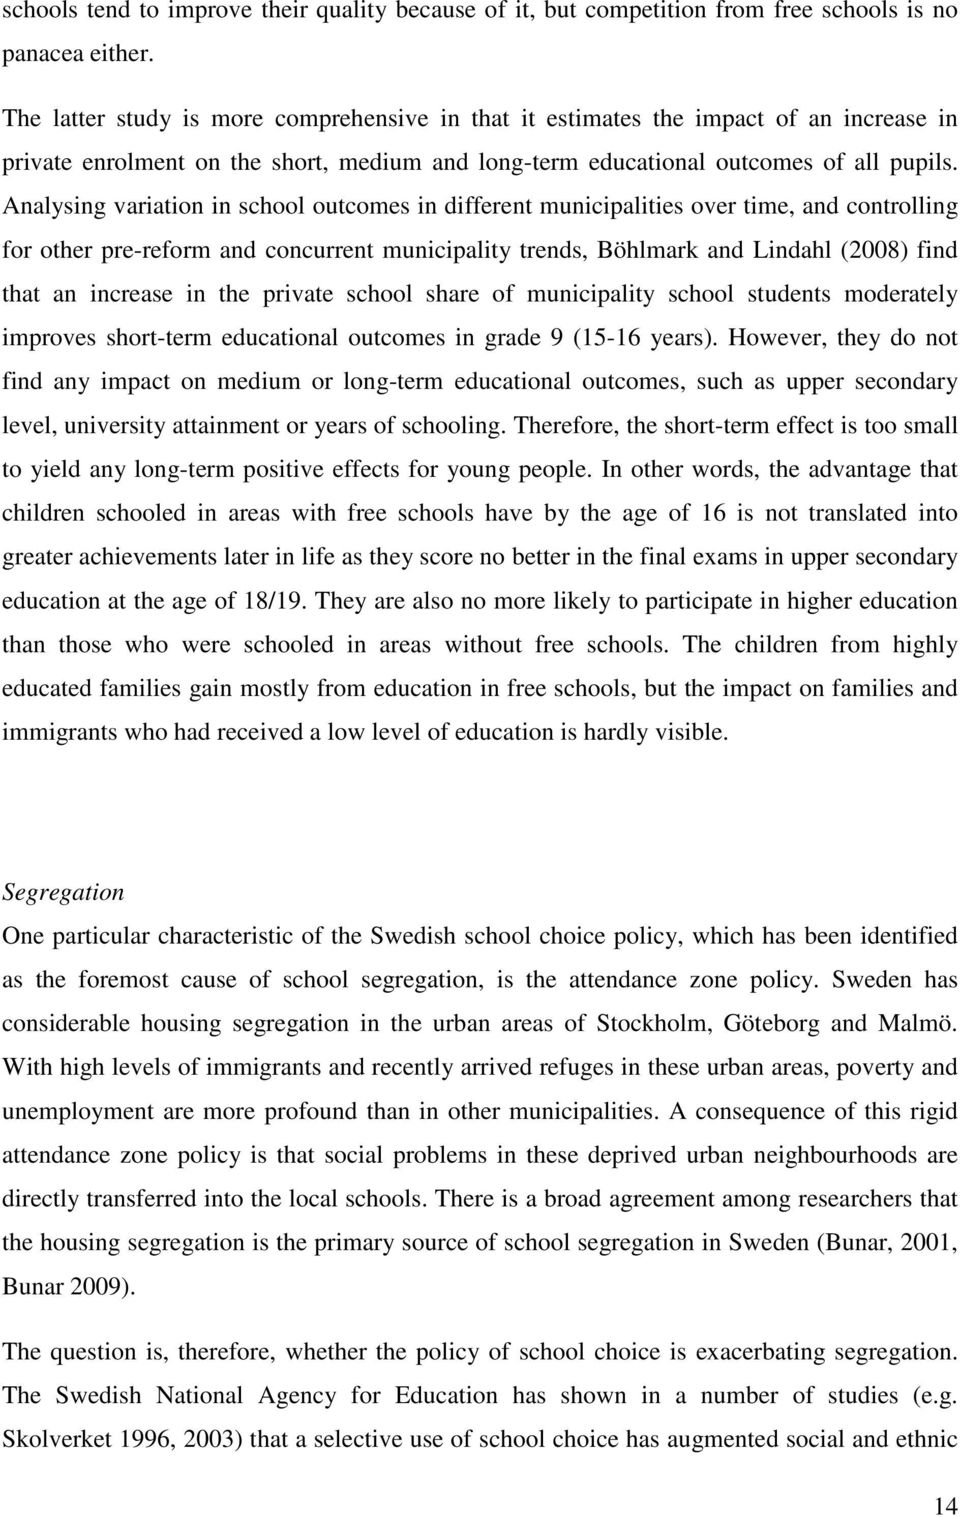 Analysing variation in school outcomes in different municipalities over time, and controlling for other pre-reform and concurrent municipality trends, Böhlmark and Lindahl (2008) find that an